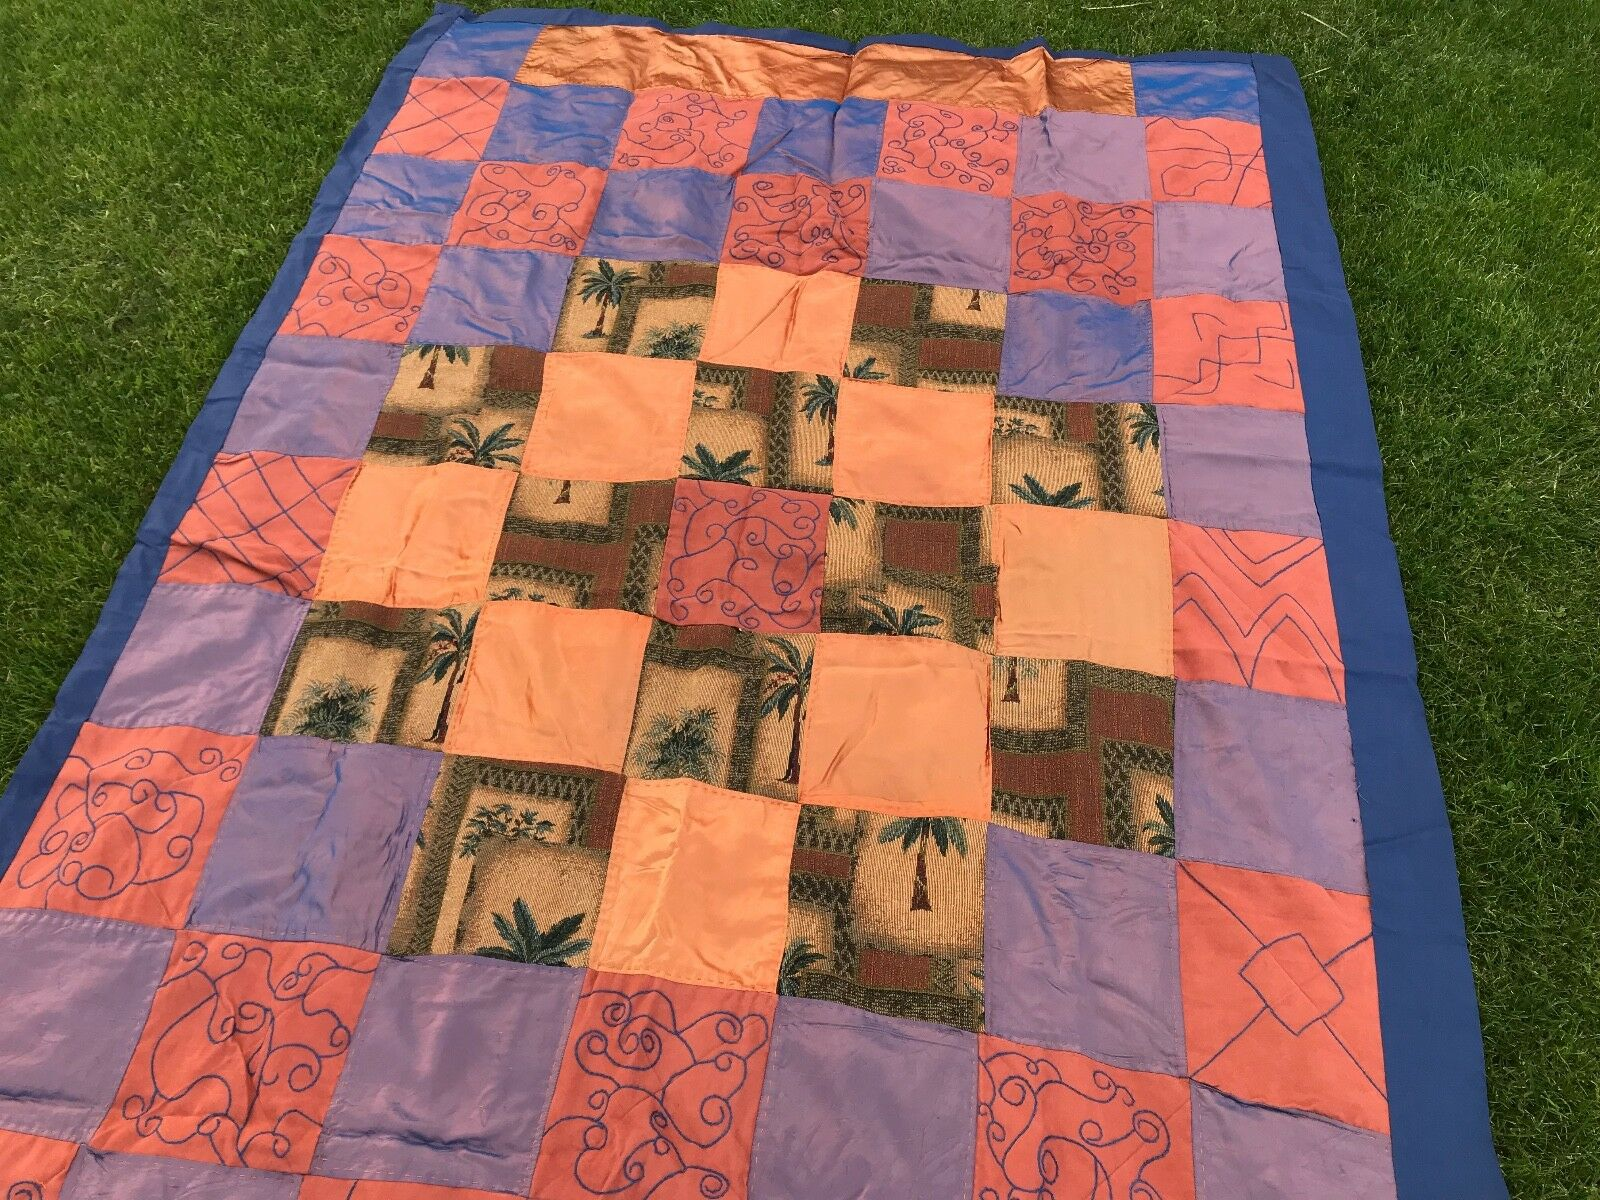 COVERLET, TWIN BEDSPREAD PATCHWORK, HANDSTITCHED MULTI MATERIAL PALM TREES